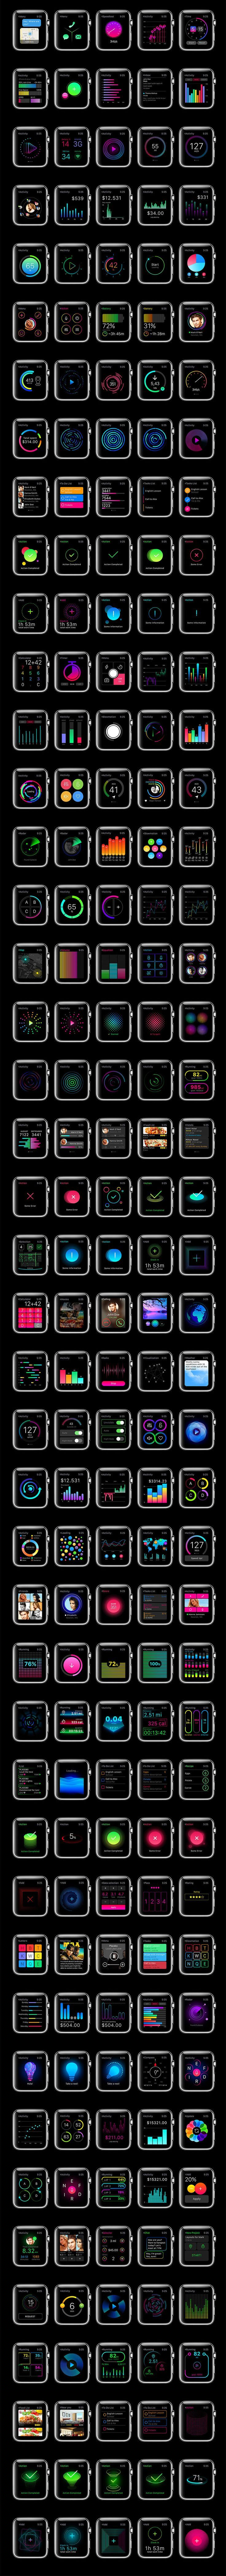 Apple Watch UI Kit   + Enahnce your #MacBook / #iMac experience , visit: http://pdsp.us/macbookcleanse